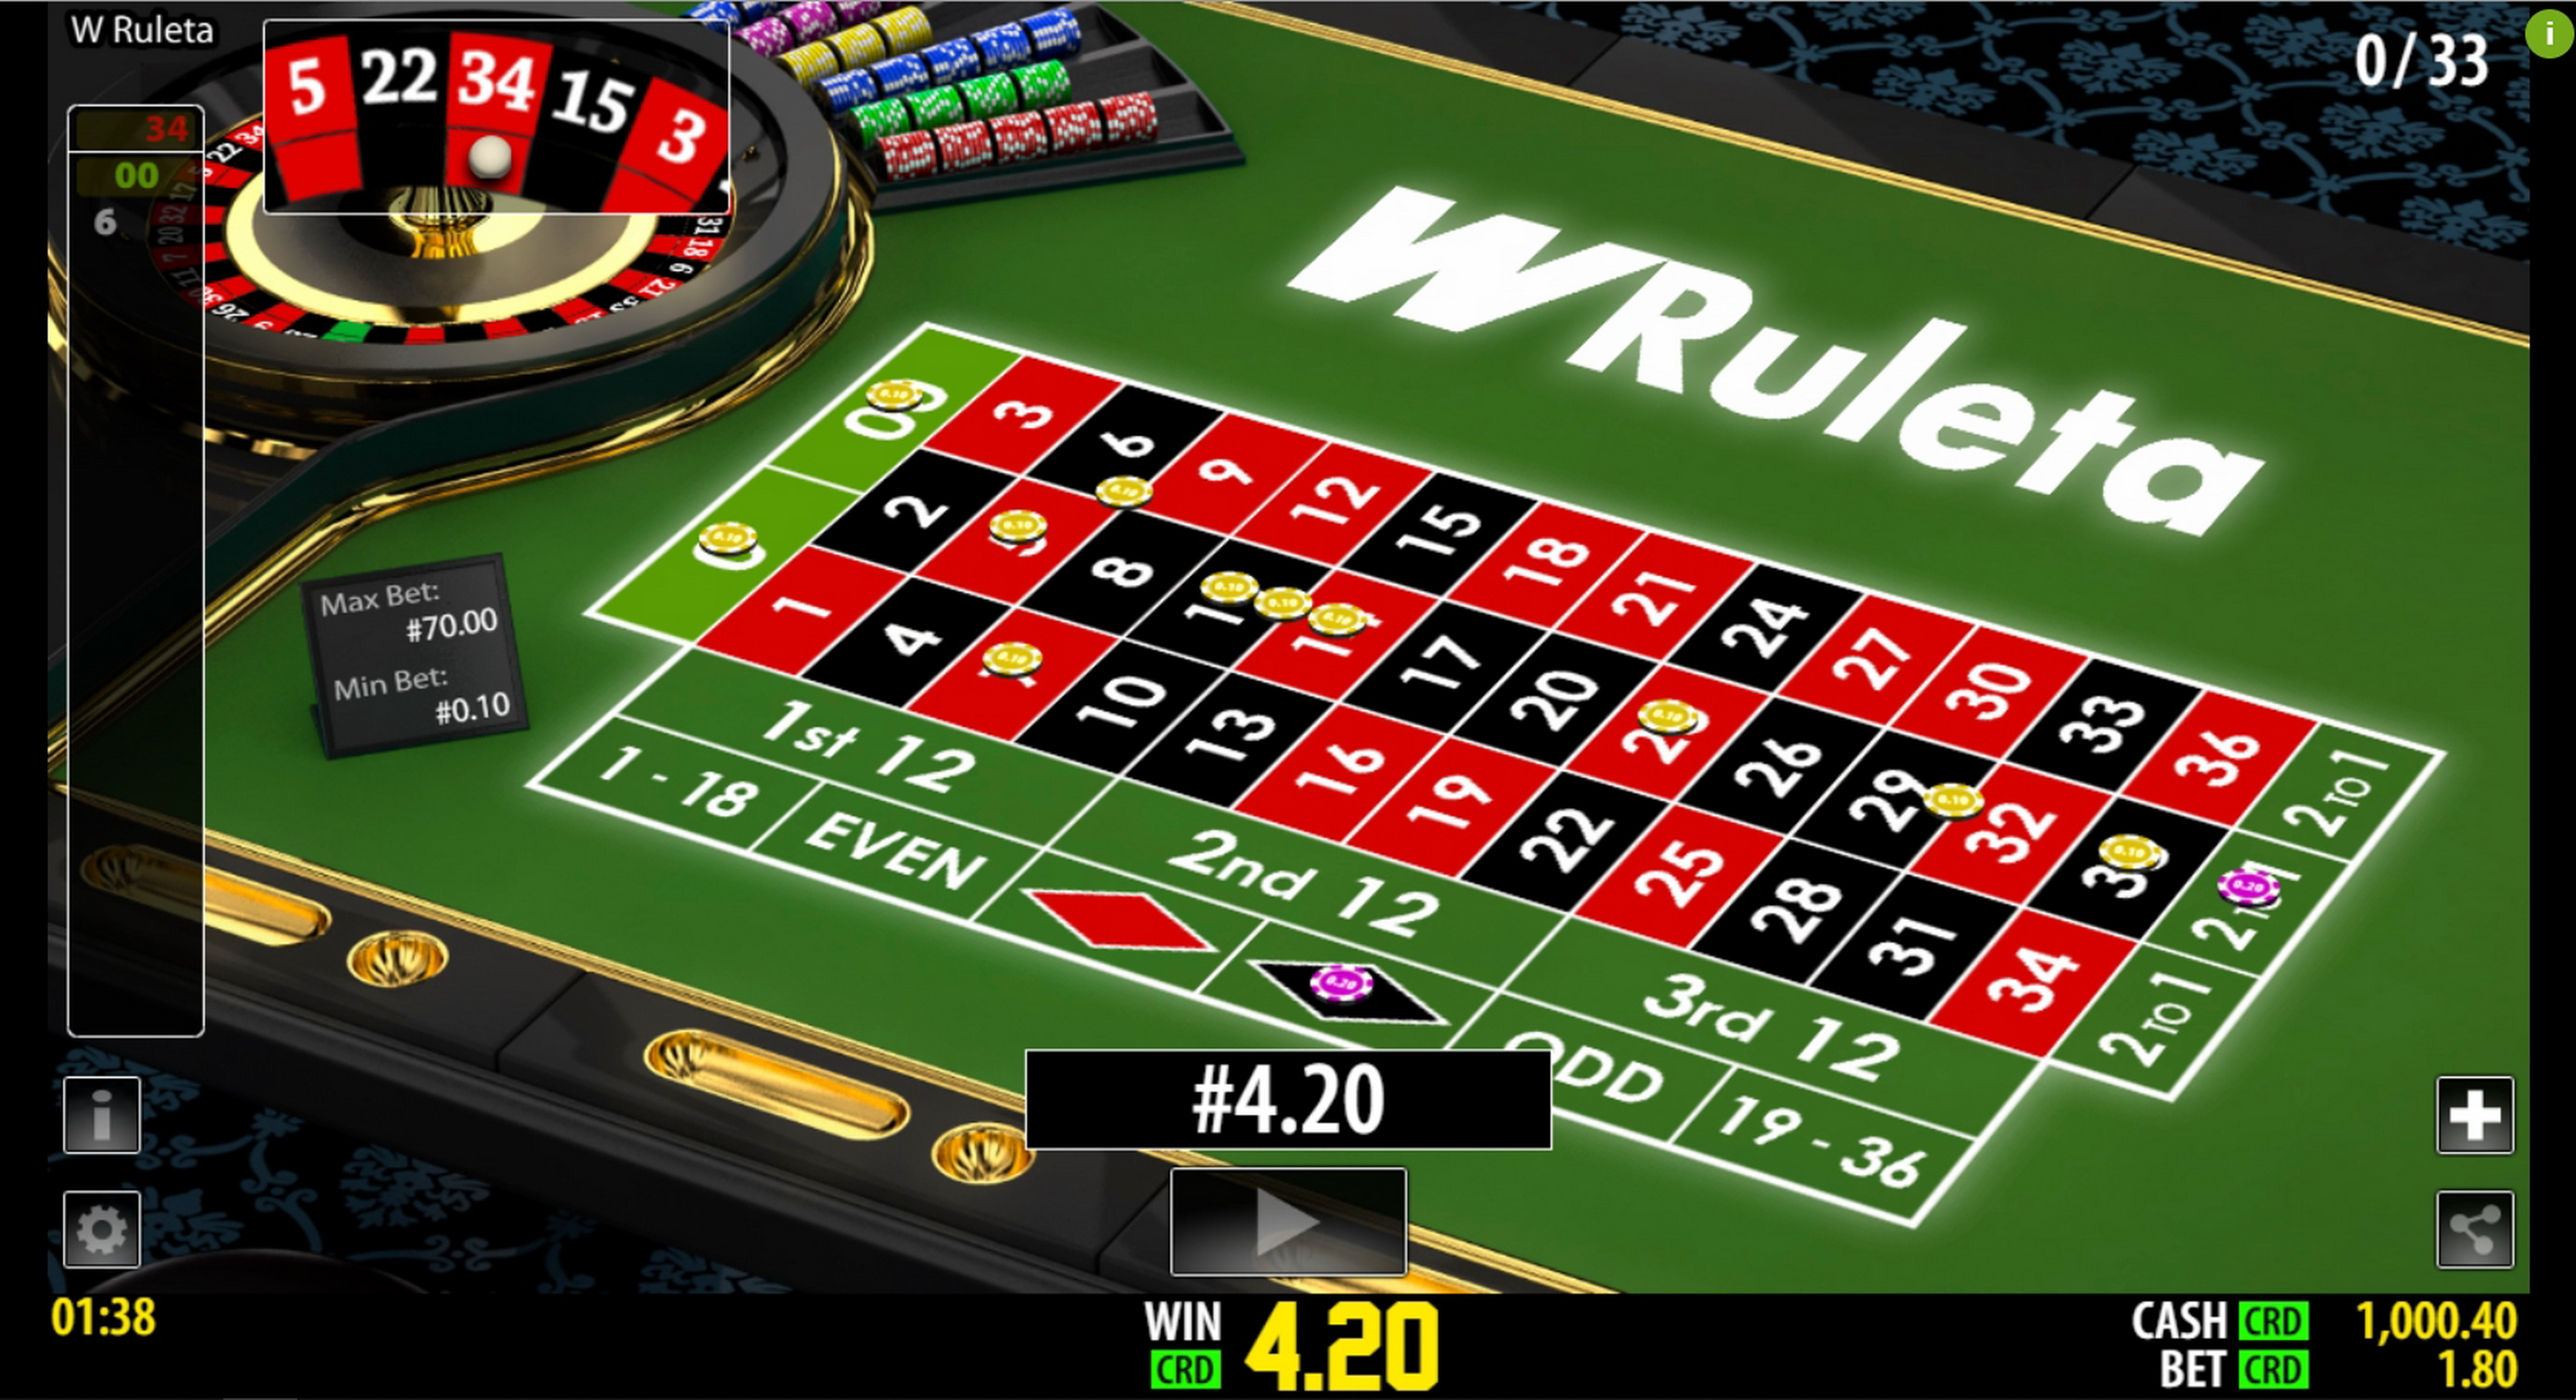 Win Money in W Ruleta (World Match) Free Slot Game by World Match